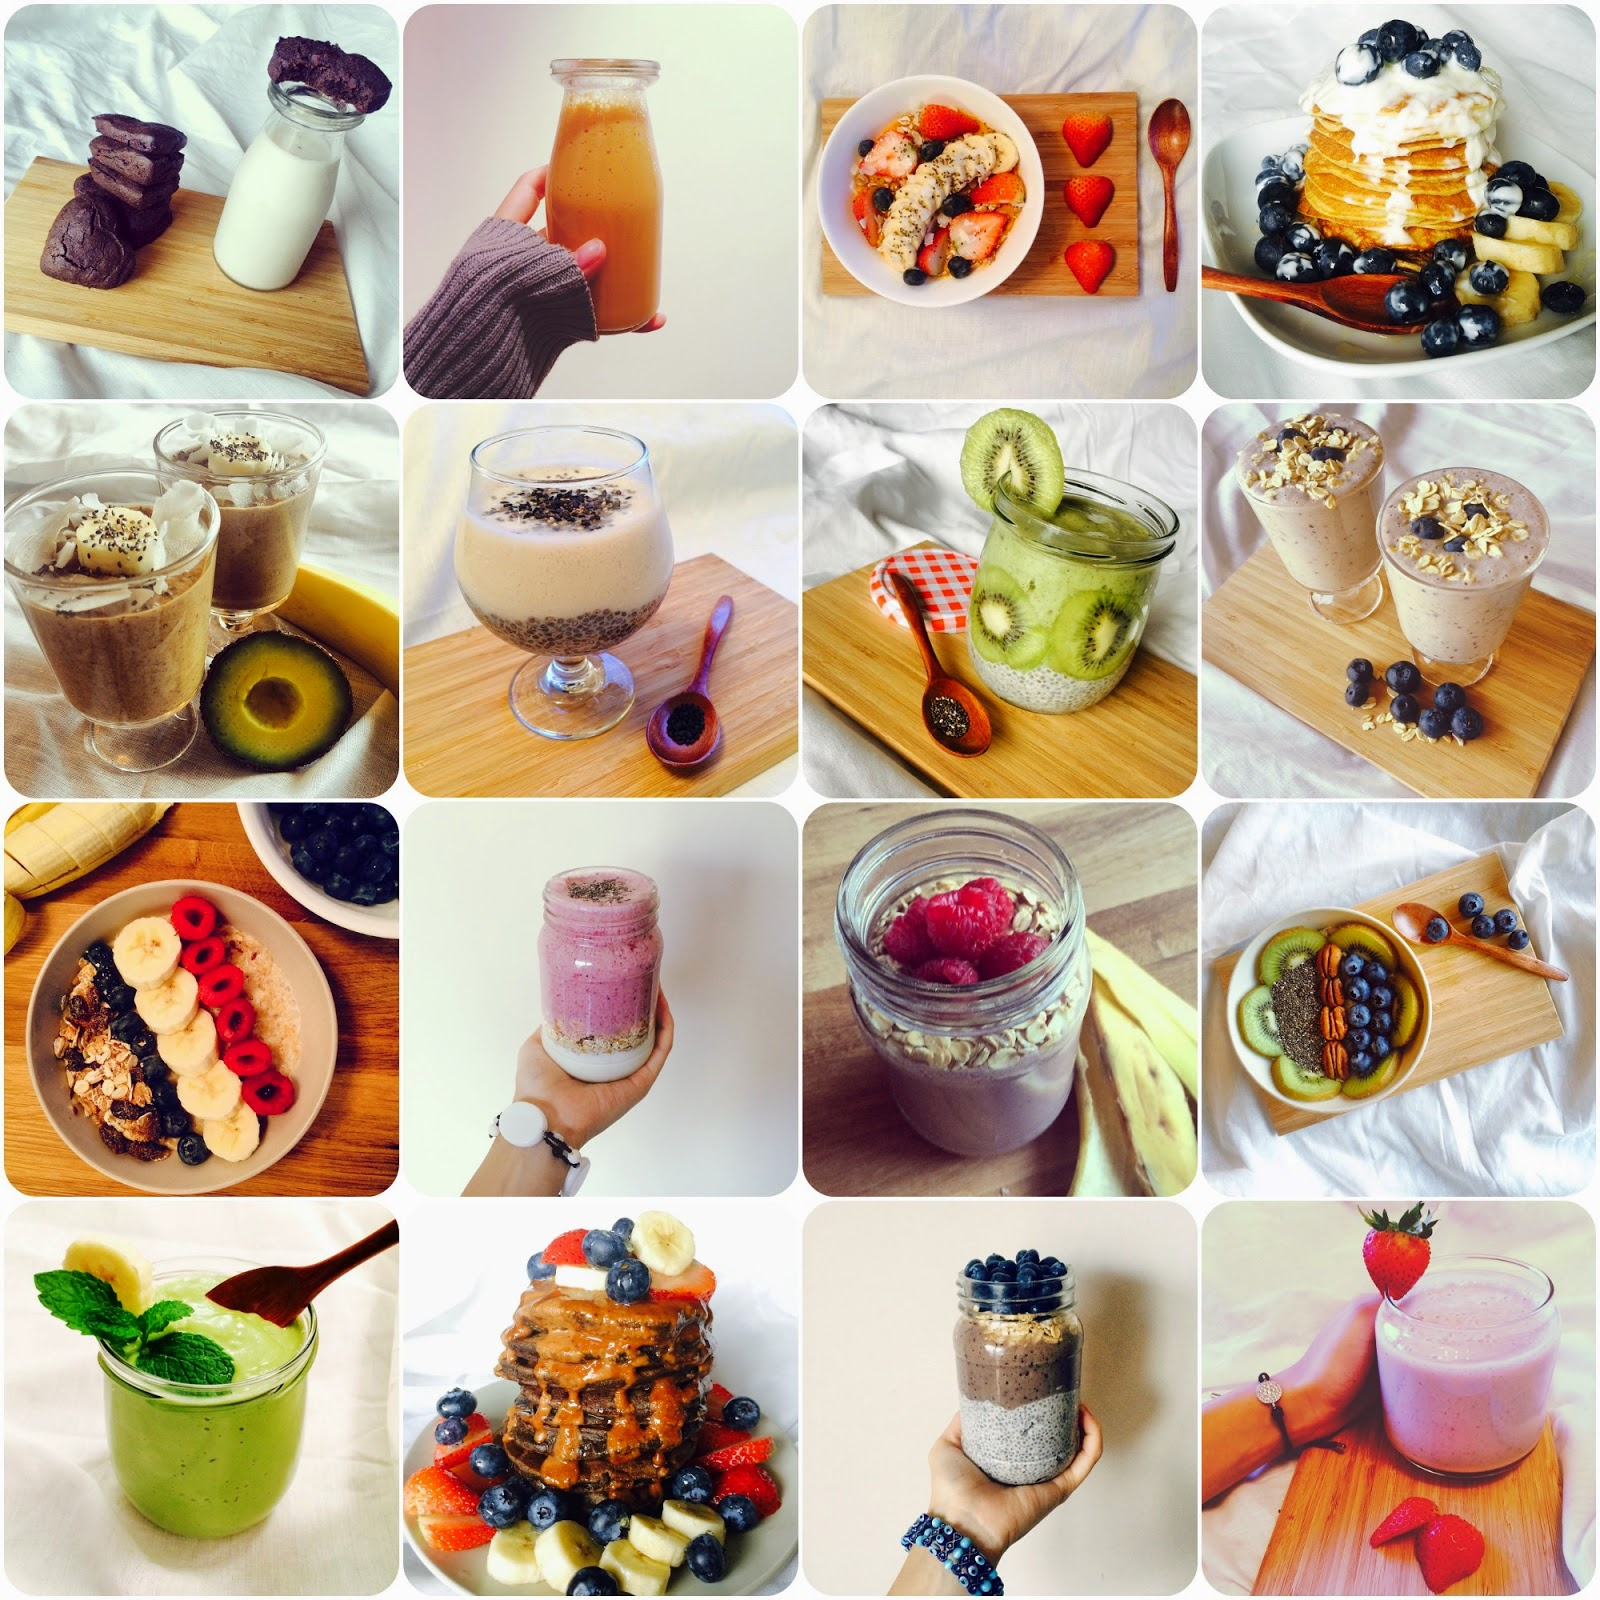 Homemade Recipes with Homemade Almond Milk - Smoothies, Pancakes, Oatmeals, Chia Pudding